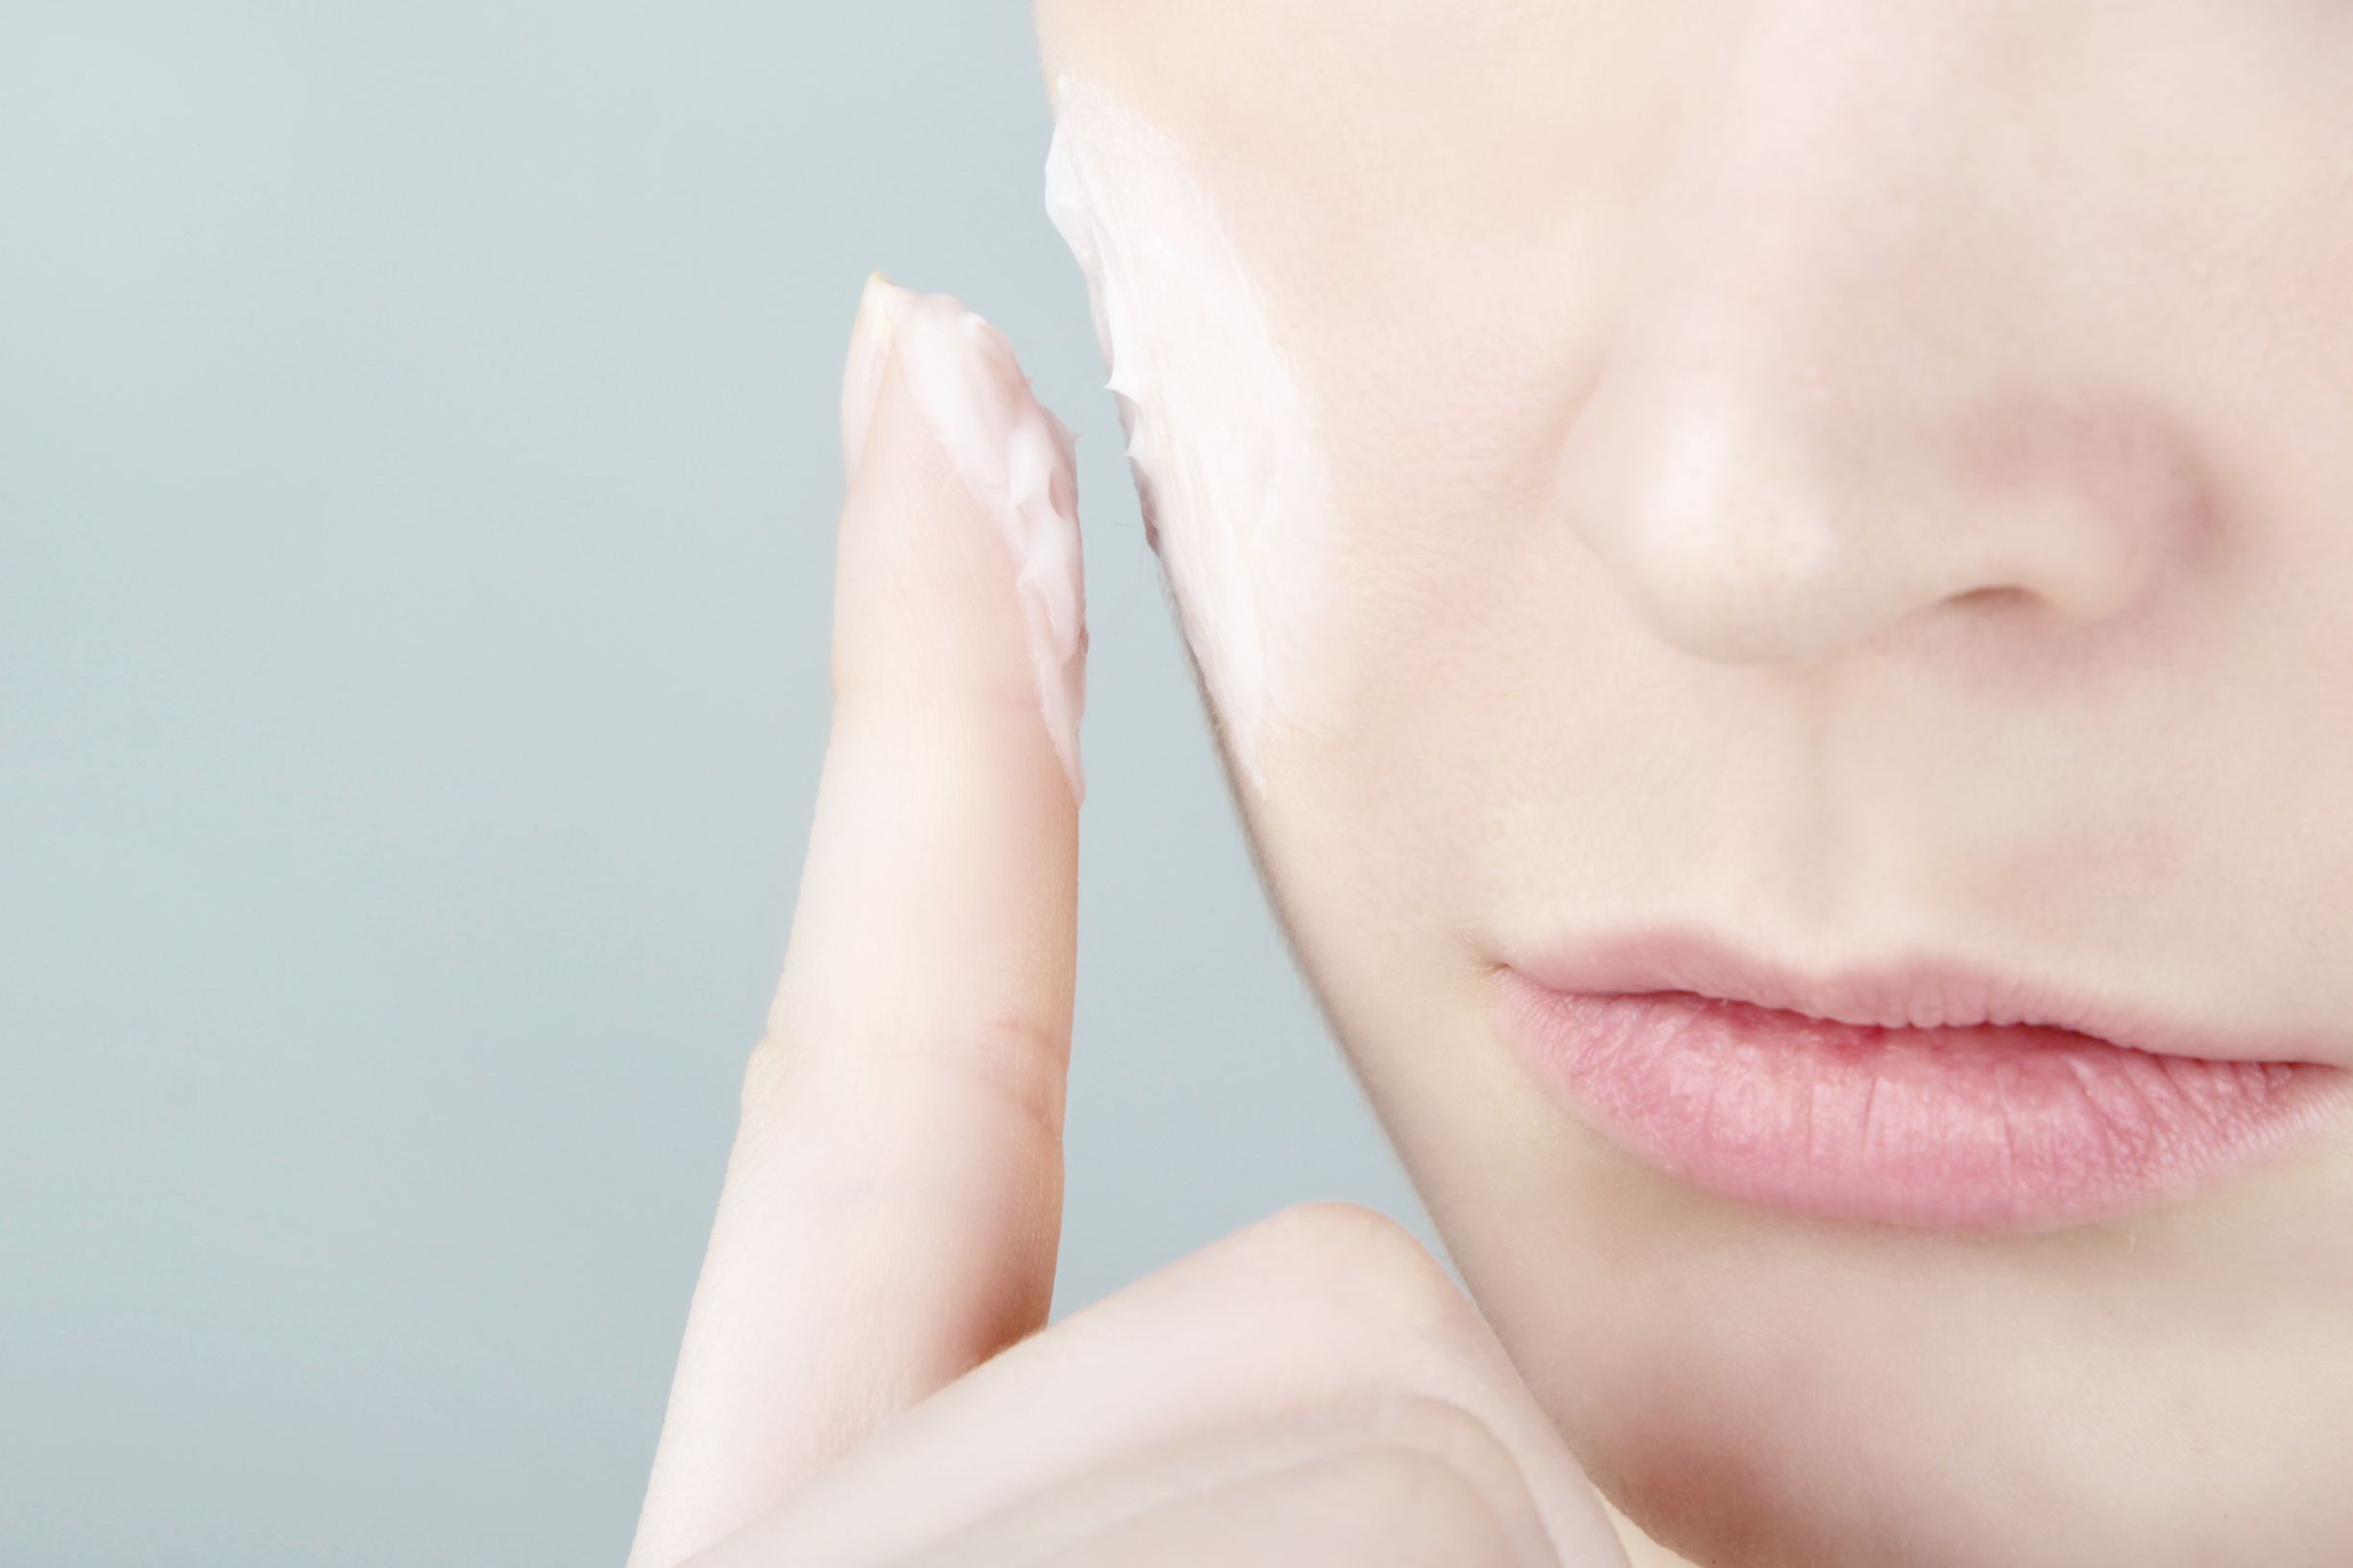 How to treat Acne (Part 2): Acne Scars